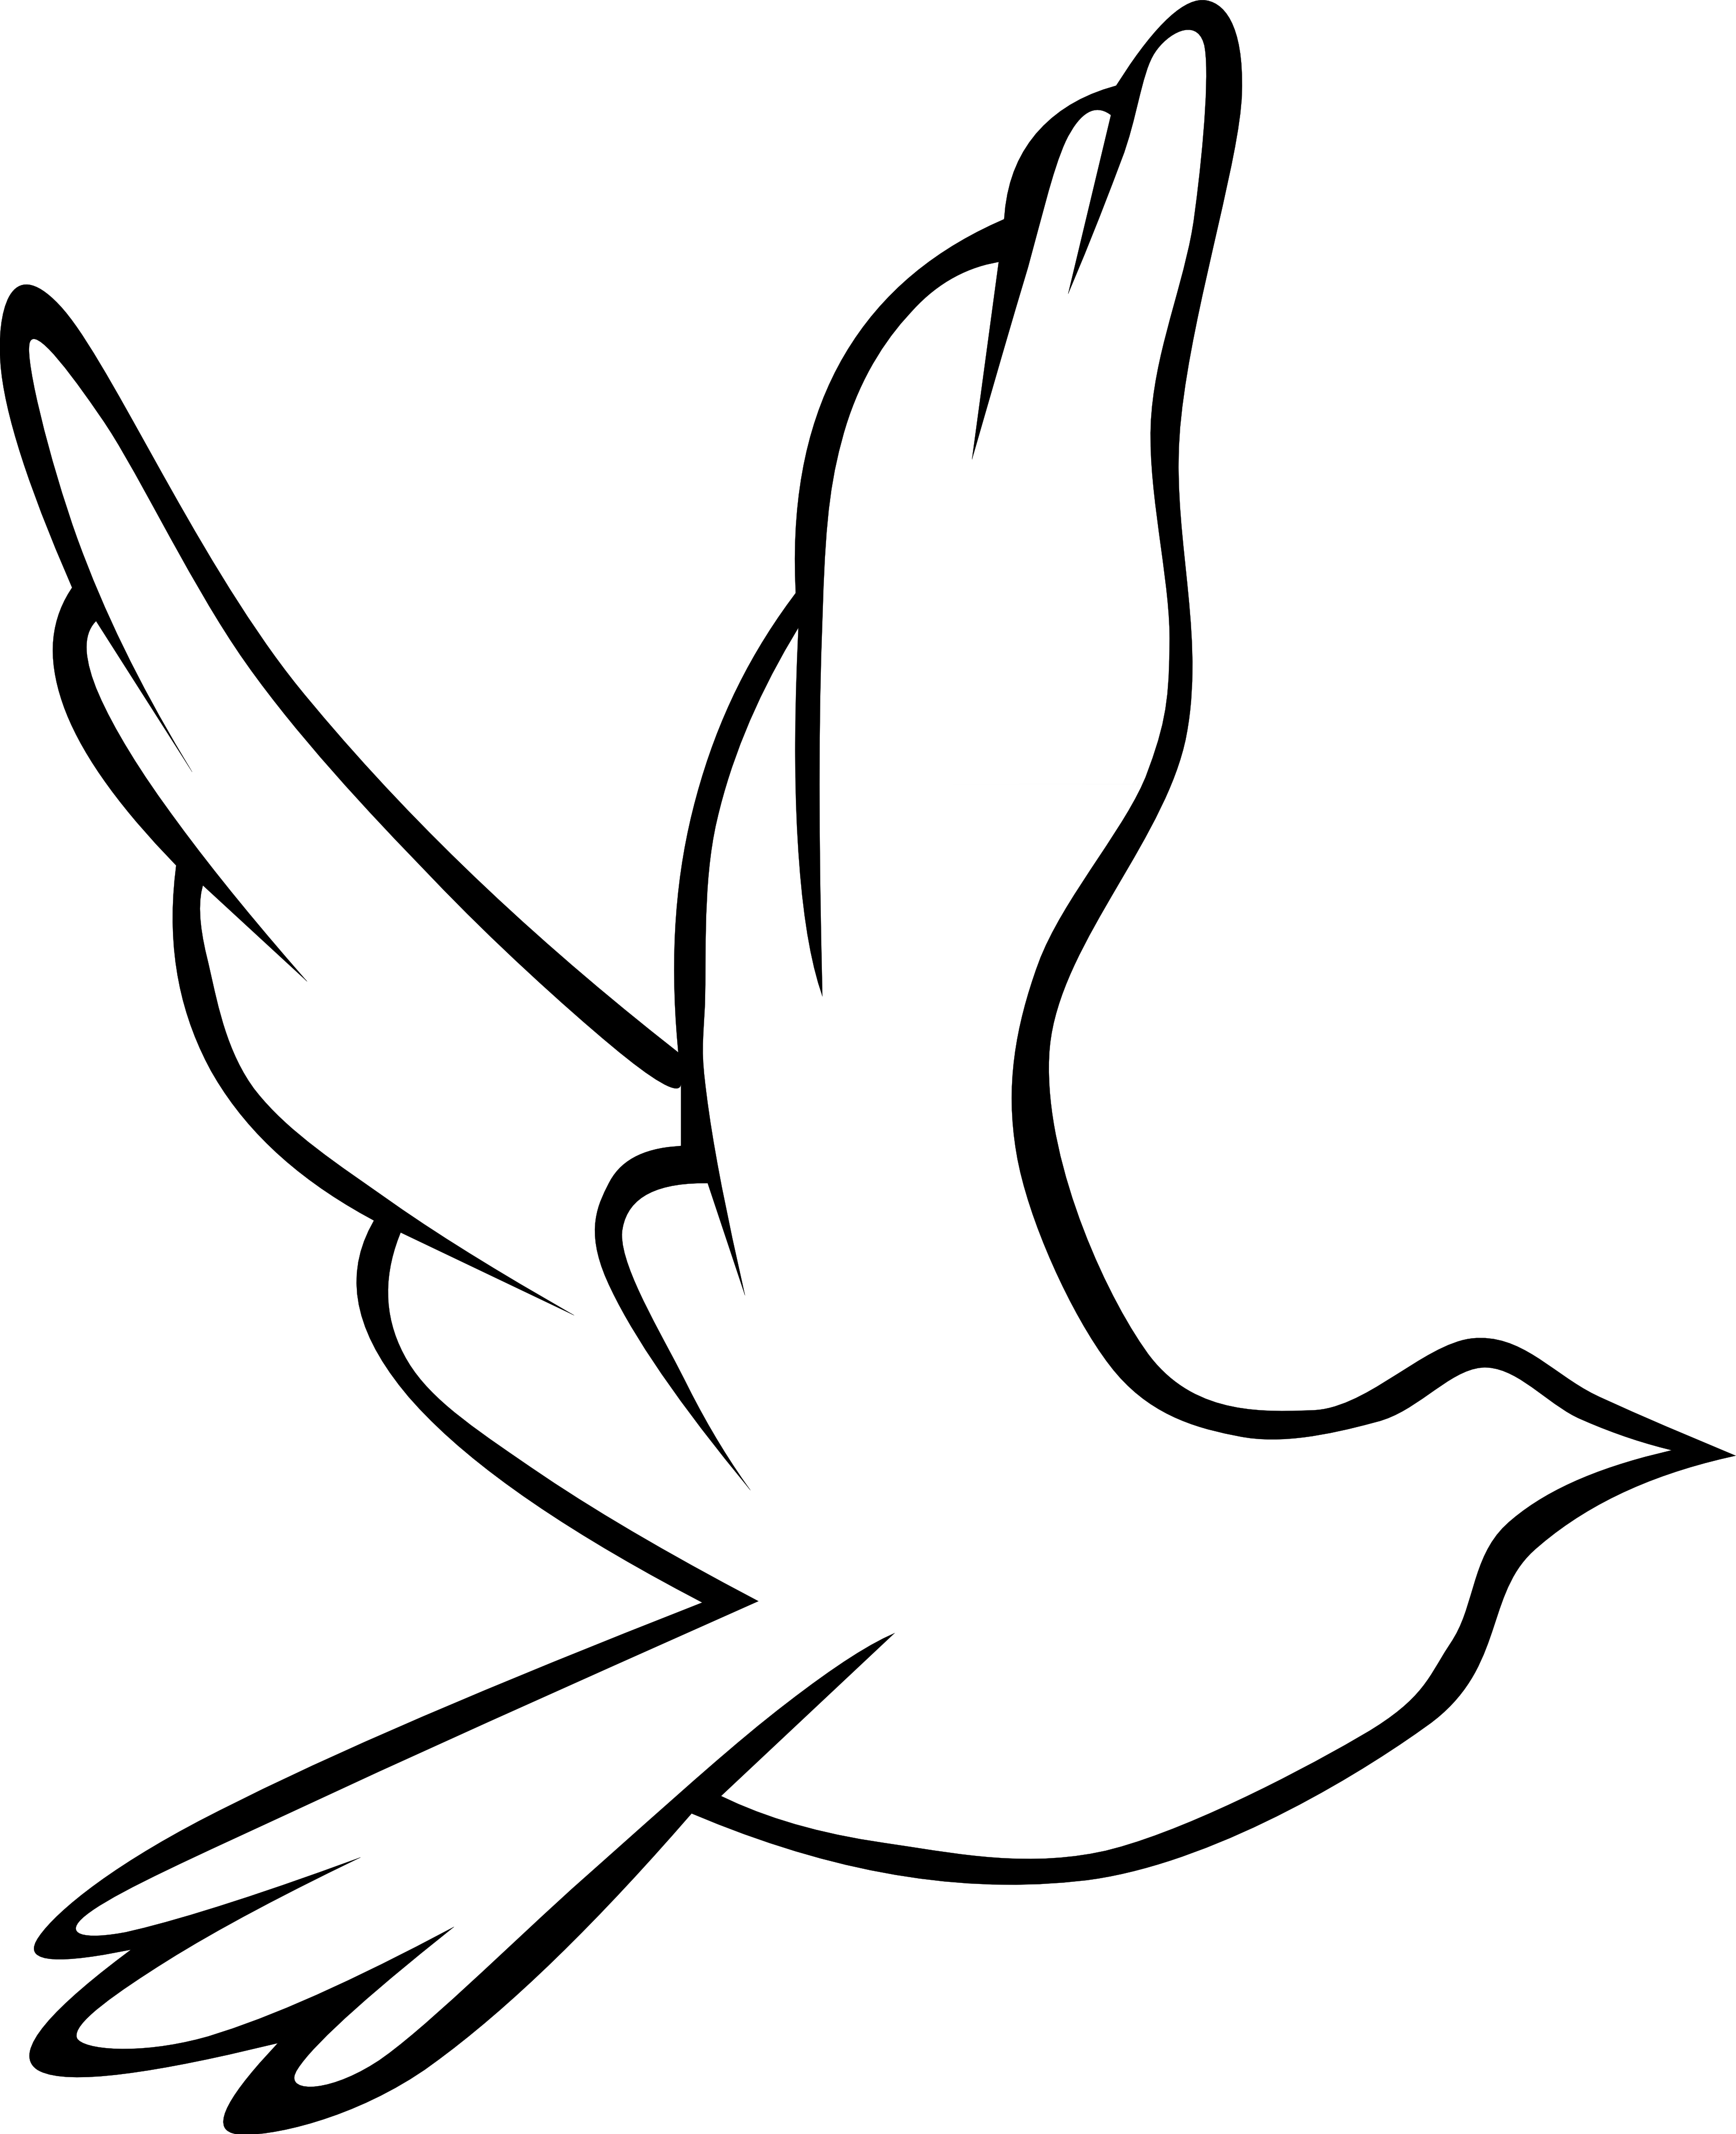 Doves and cross clipart vector library Dove And Cross Clipart | Clipart Panda - Free Clipart Images vector library